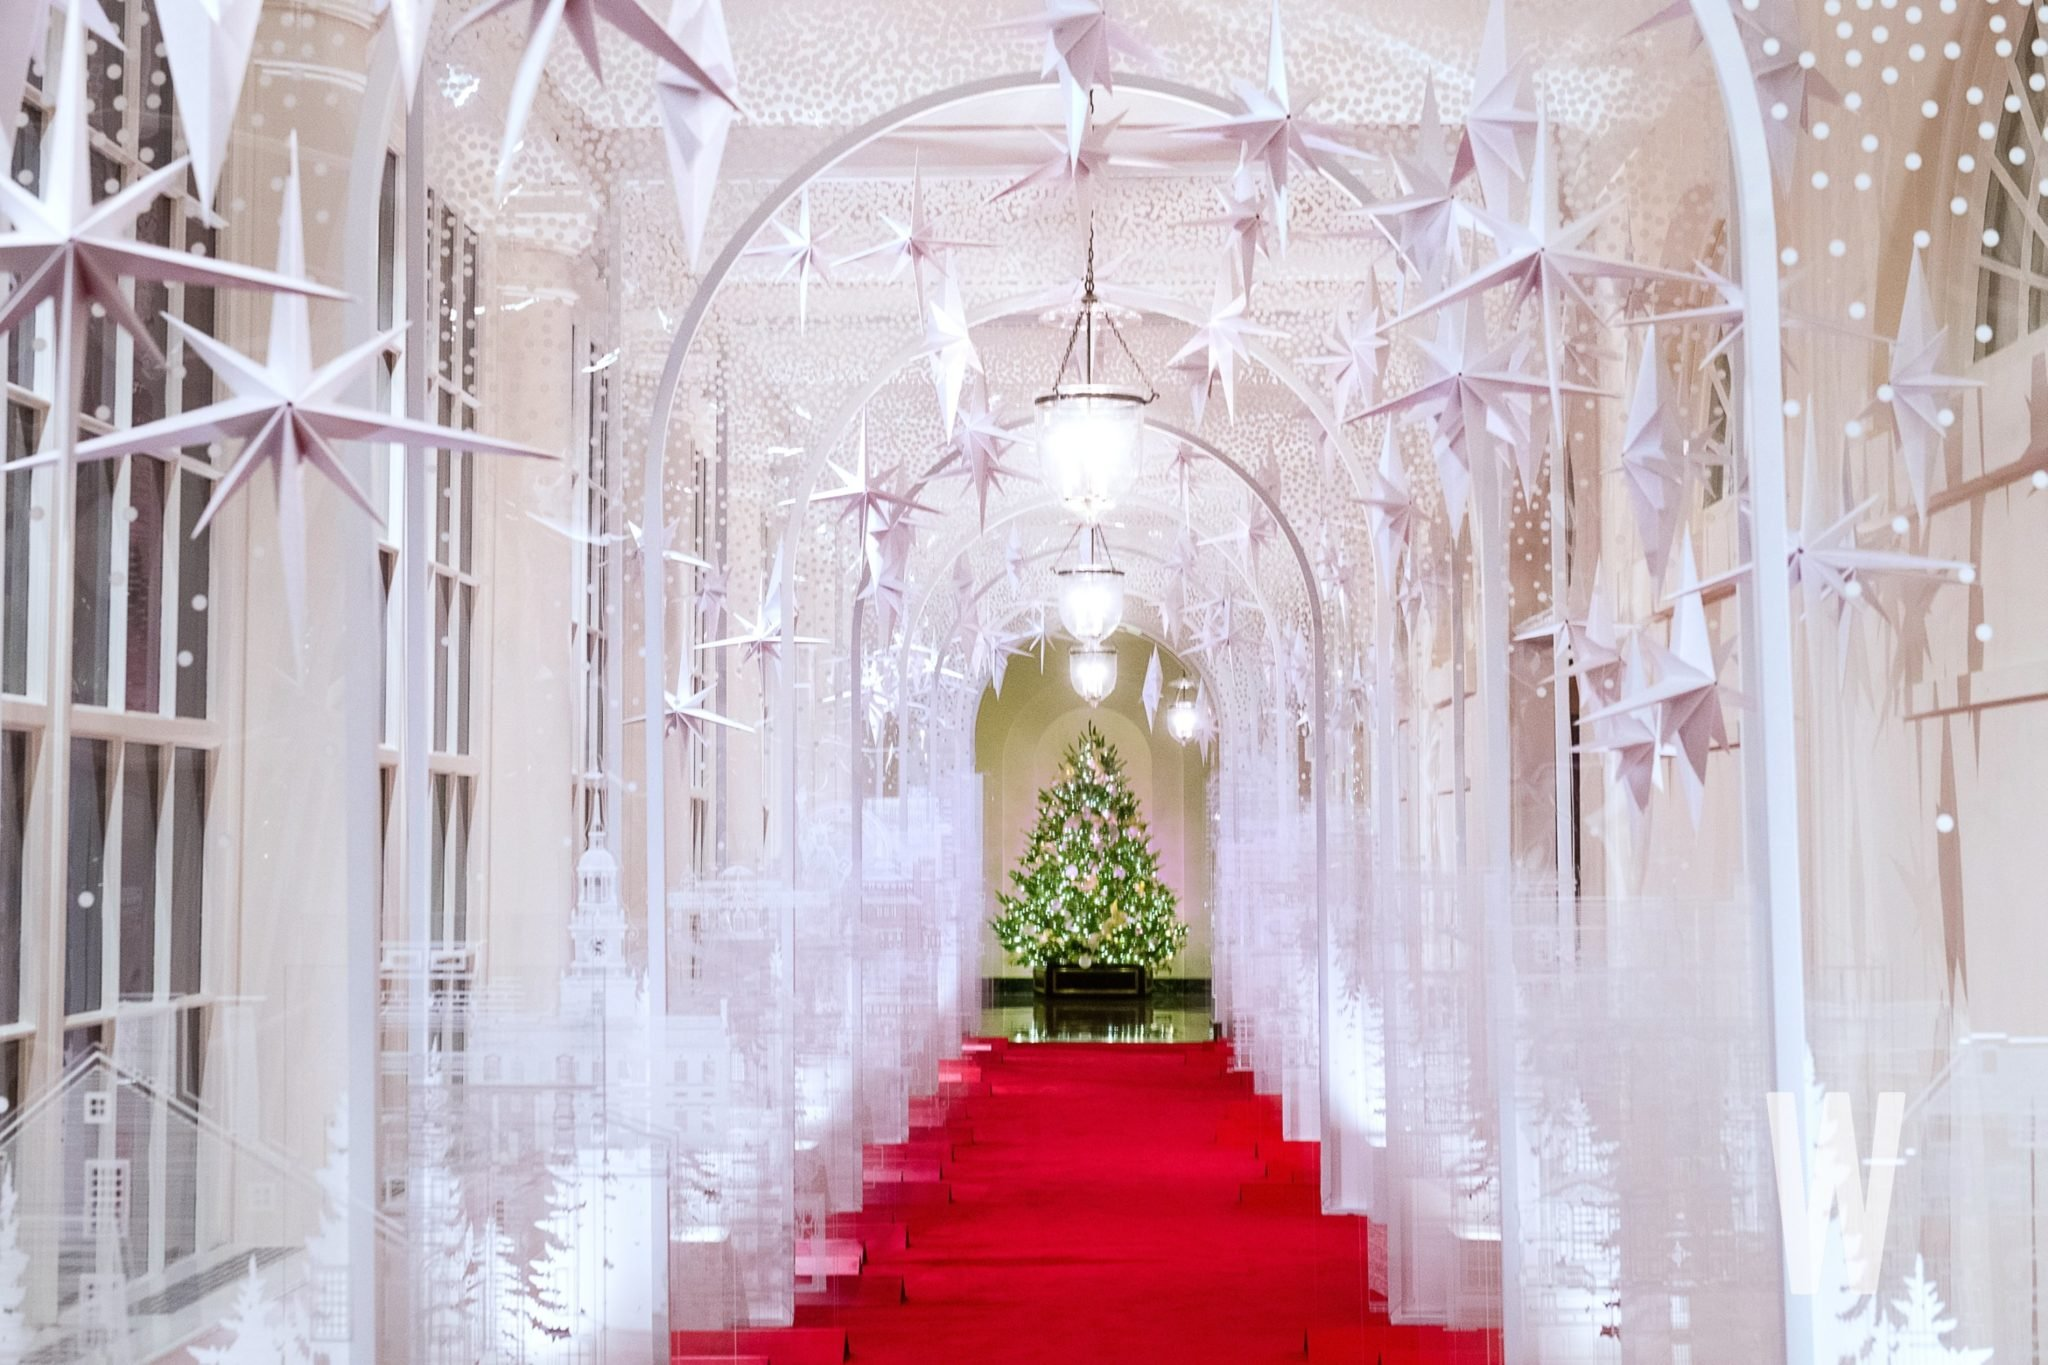 The 2019 White House Christmas Decorations Are Up, but I Really Just Miss the Blood Trees ...